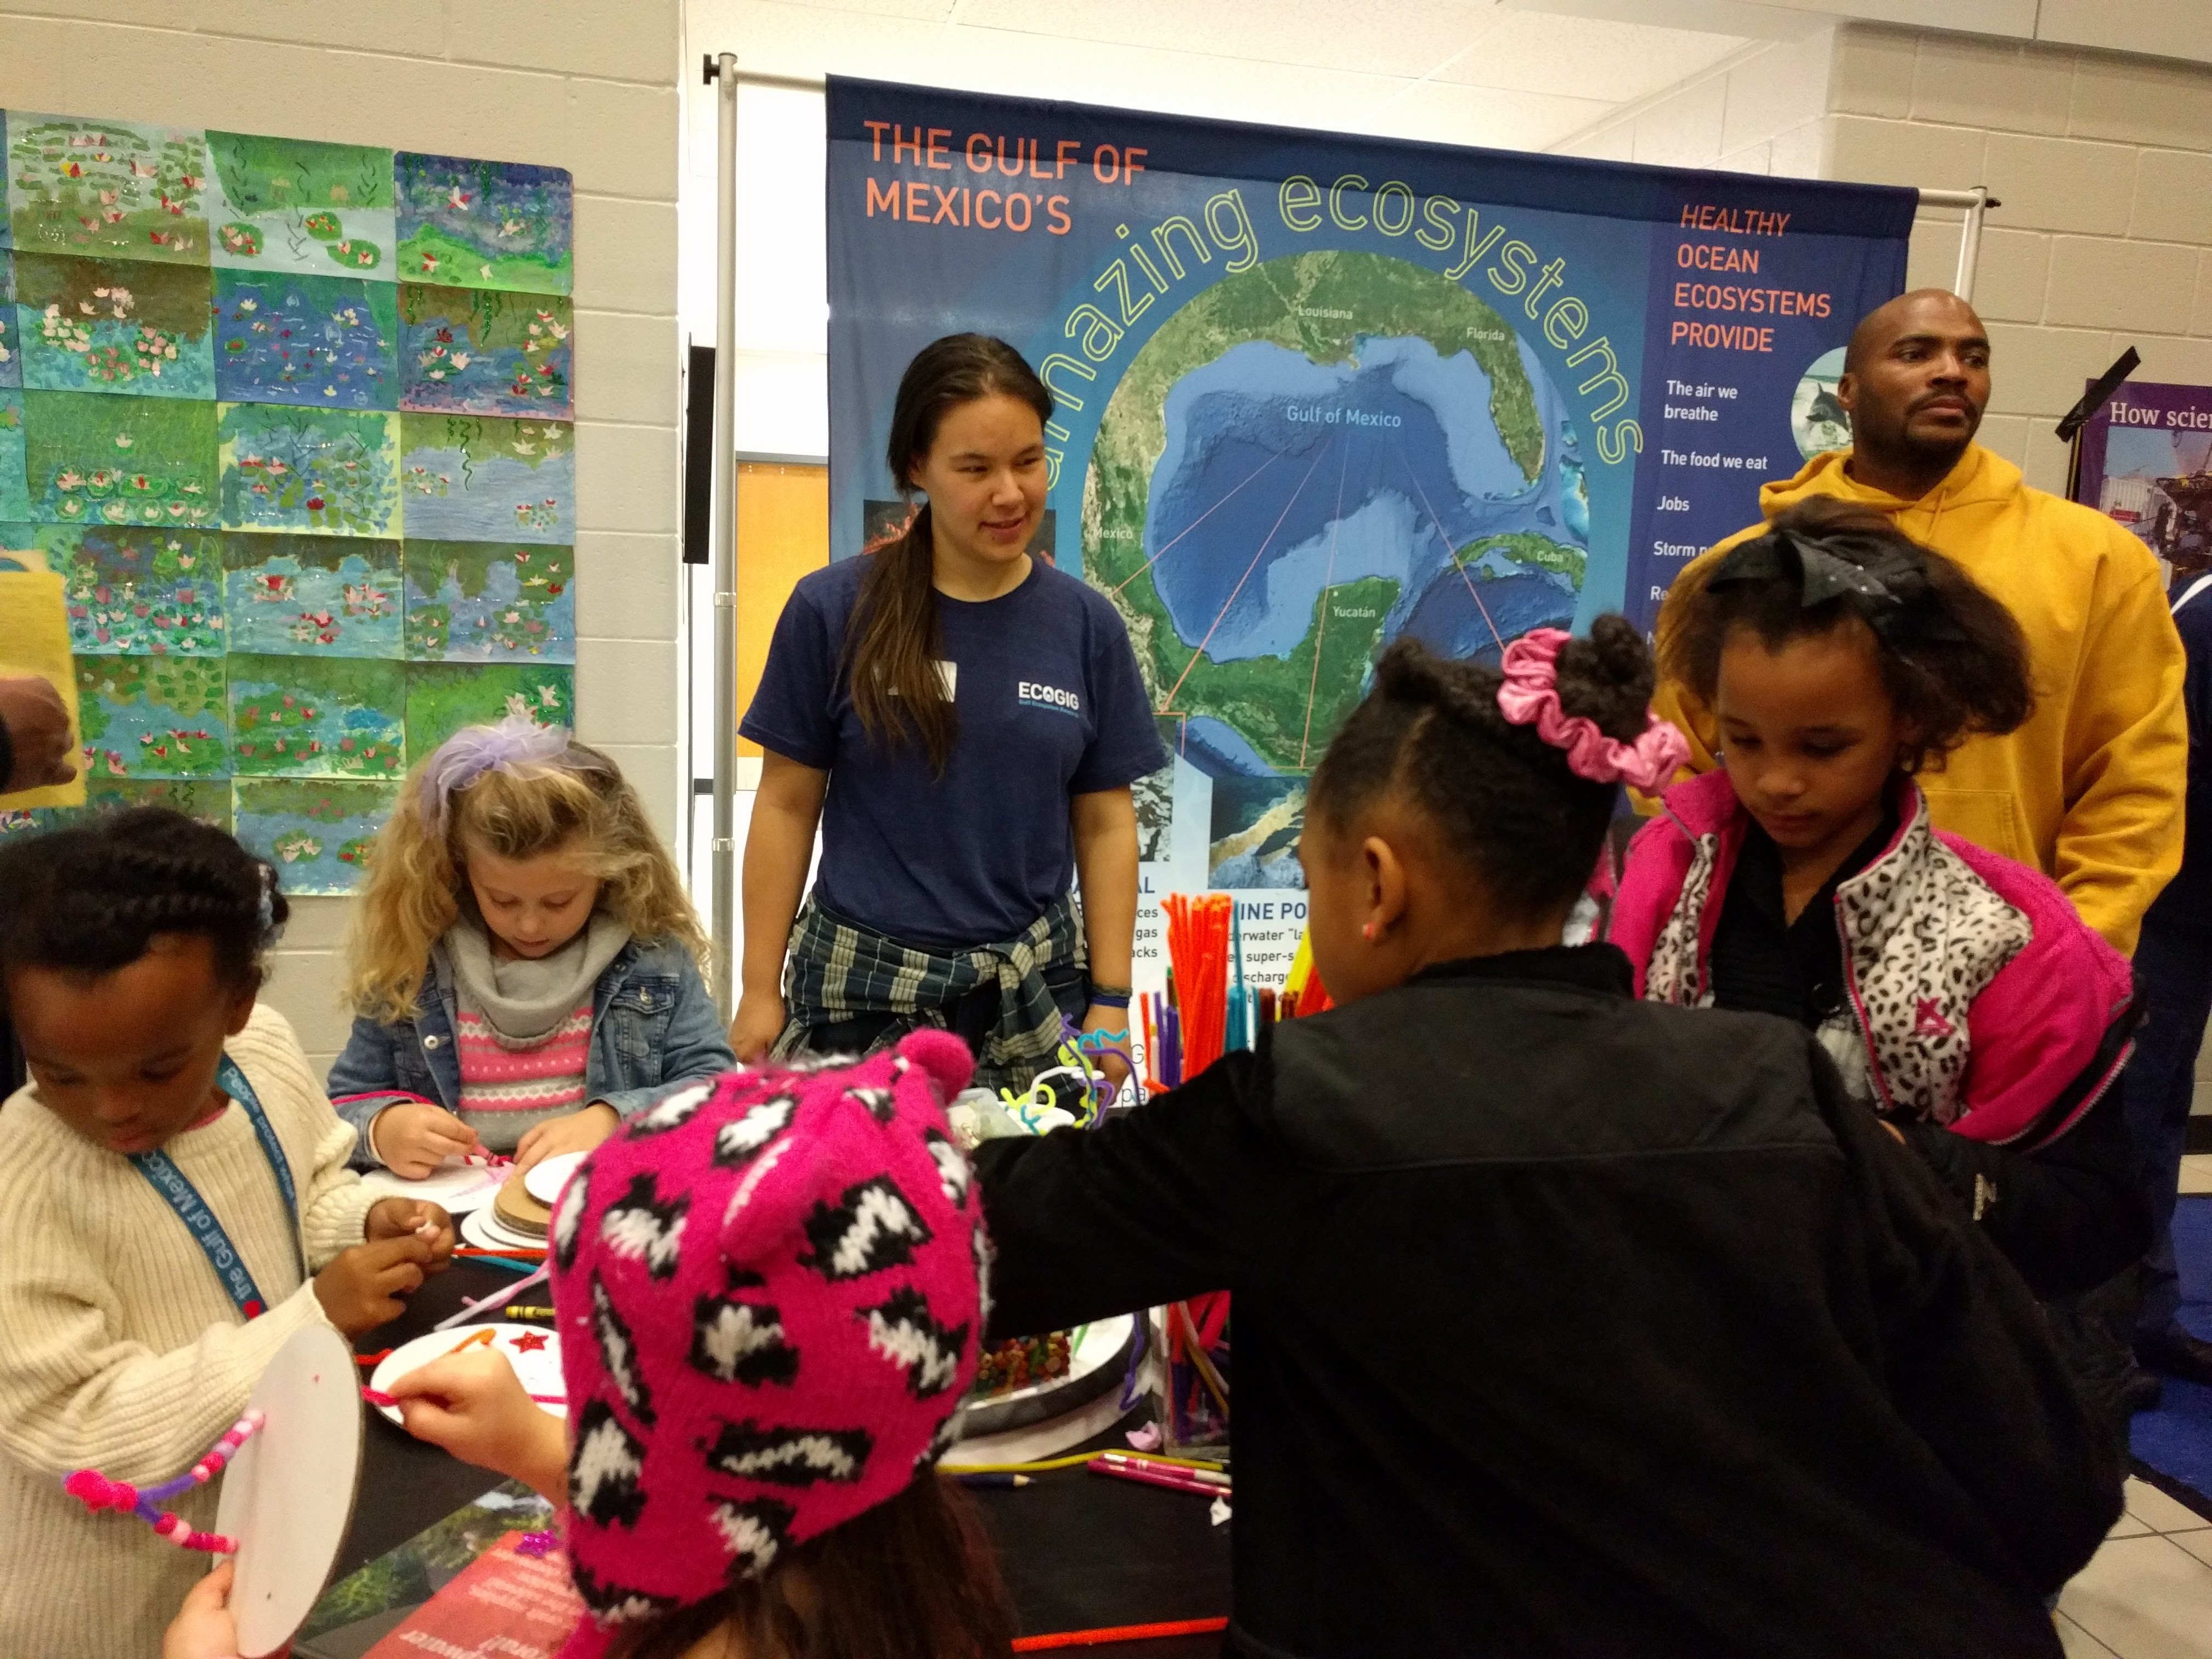 <div style='color:#000000;'><br /><br /><h2>2017 Trip Elementary STEM night. ECOGIG outreach staff and graduate students visited Trip Elementary to share the Ocean Discovery Zone with science interested students and families at their family STEM night.</h2>(c) ECOGIG</div>